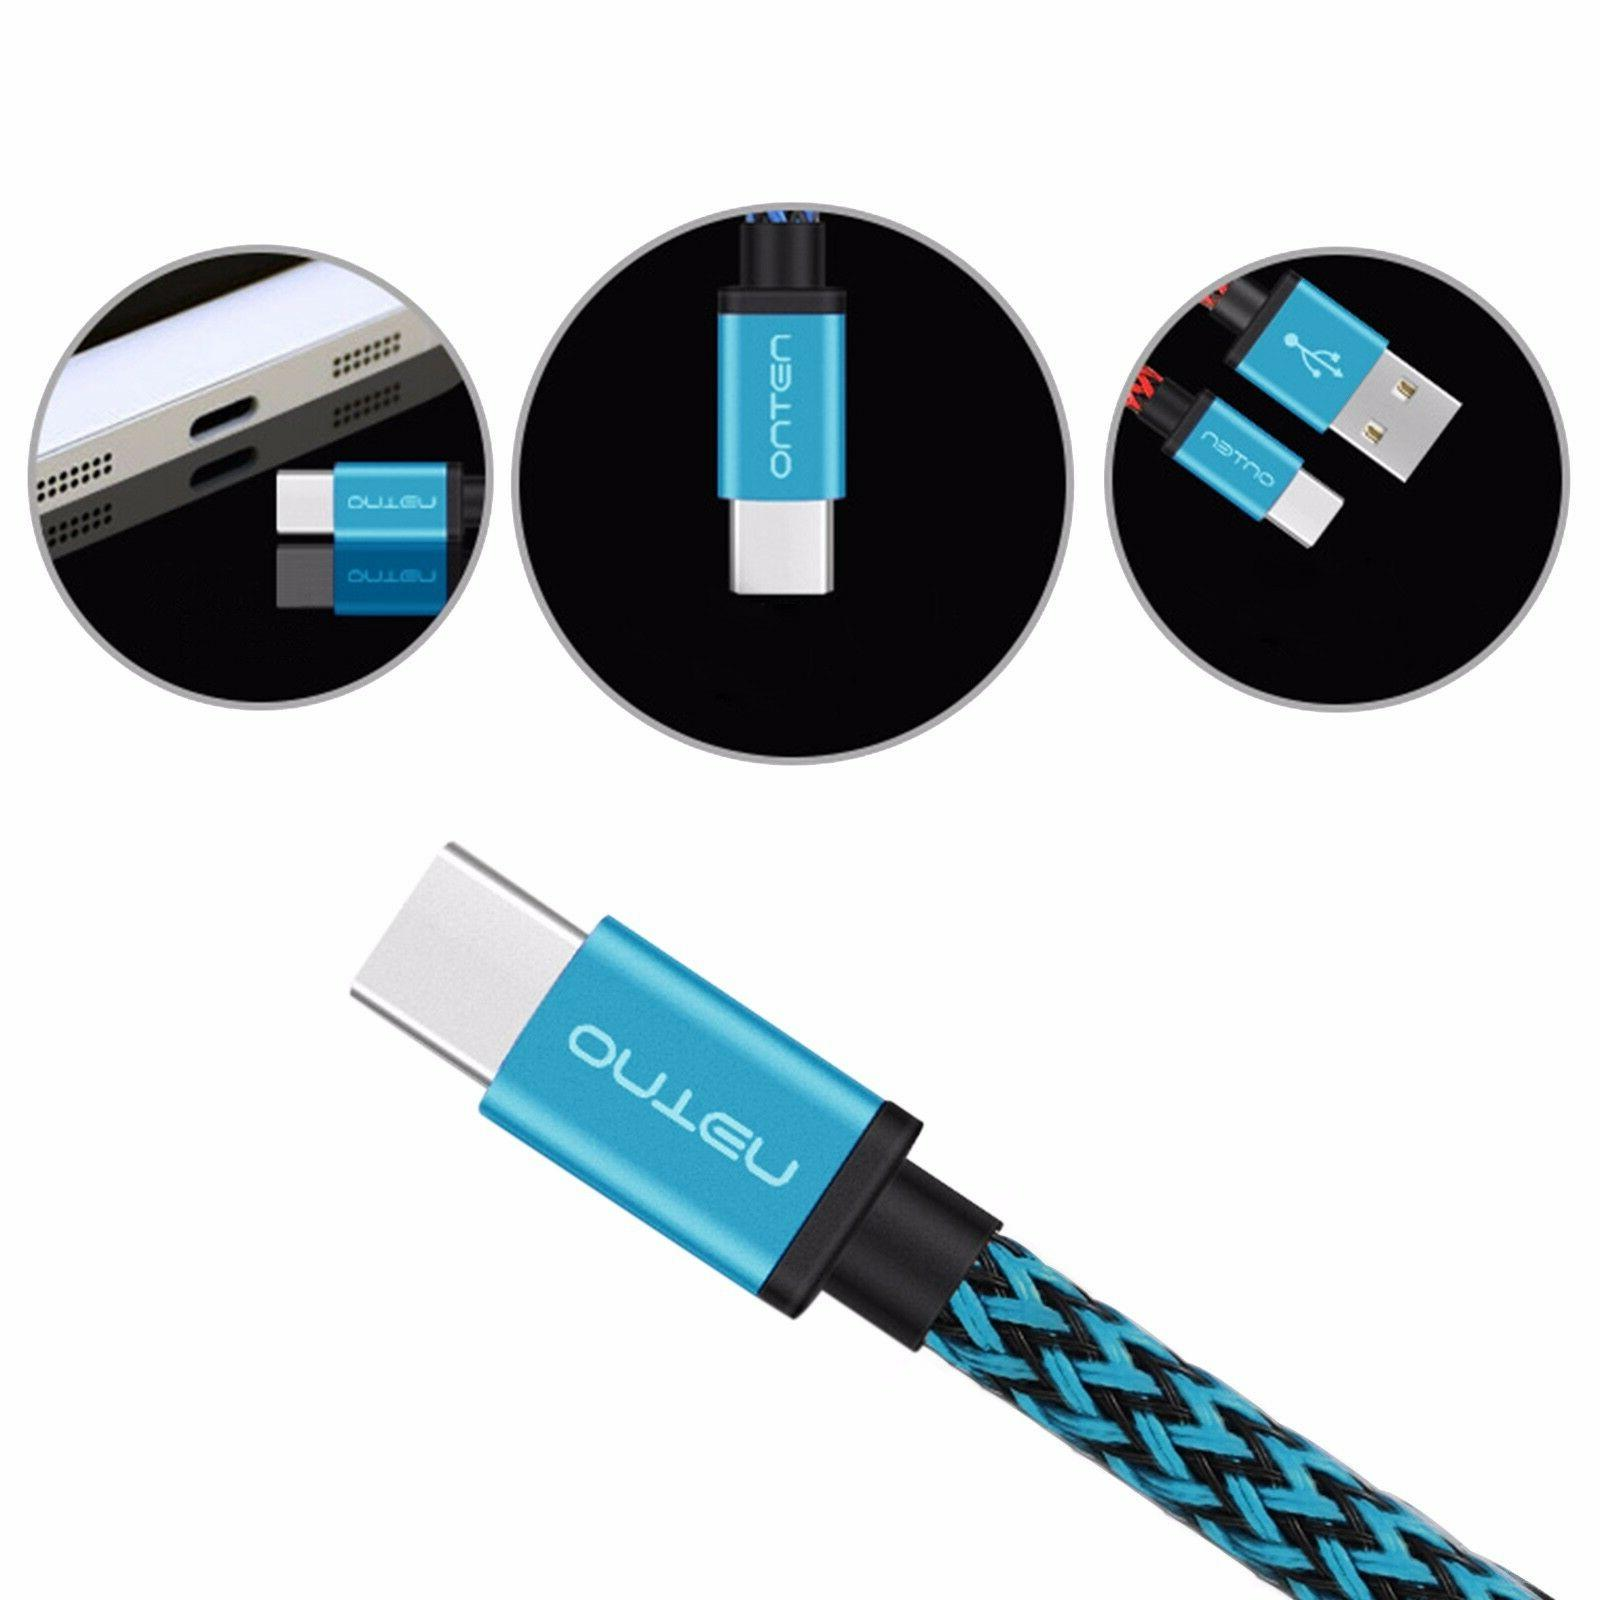 2x USB Charger Cable Cord For Google Nexus U11 10